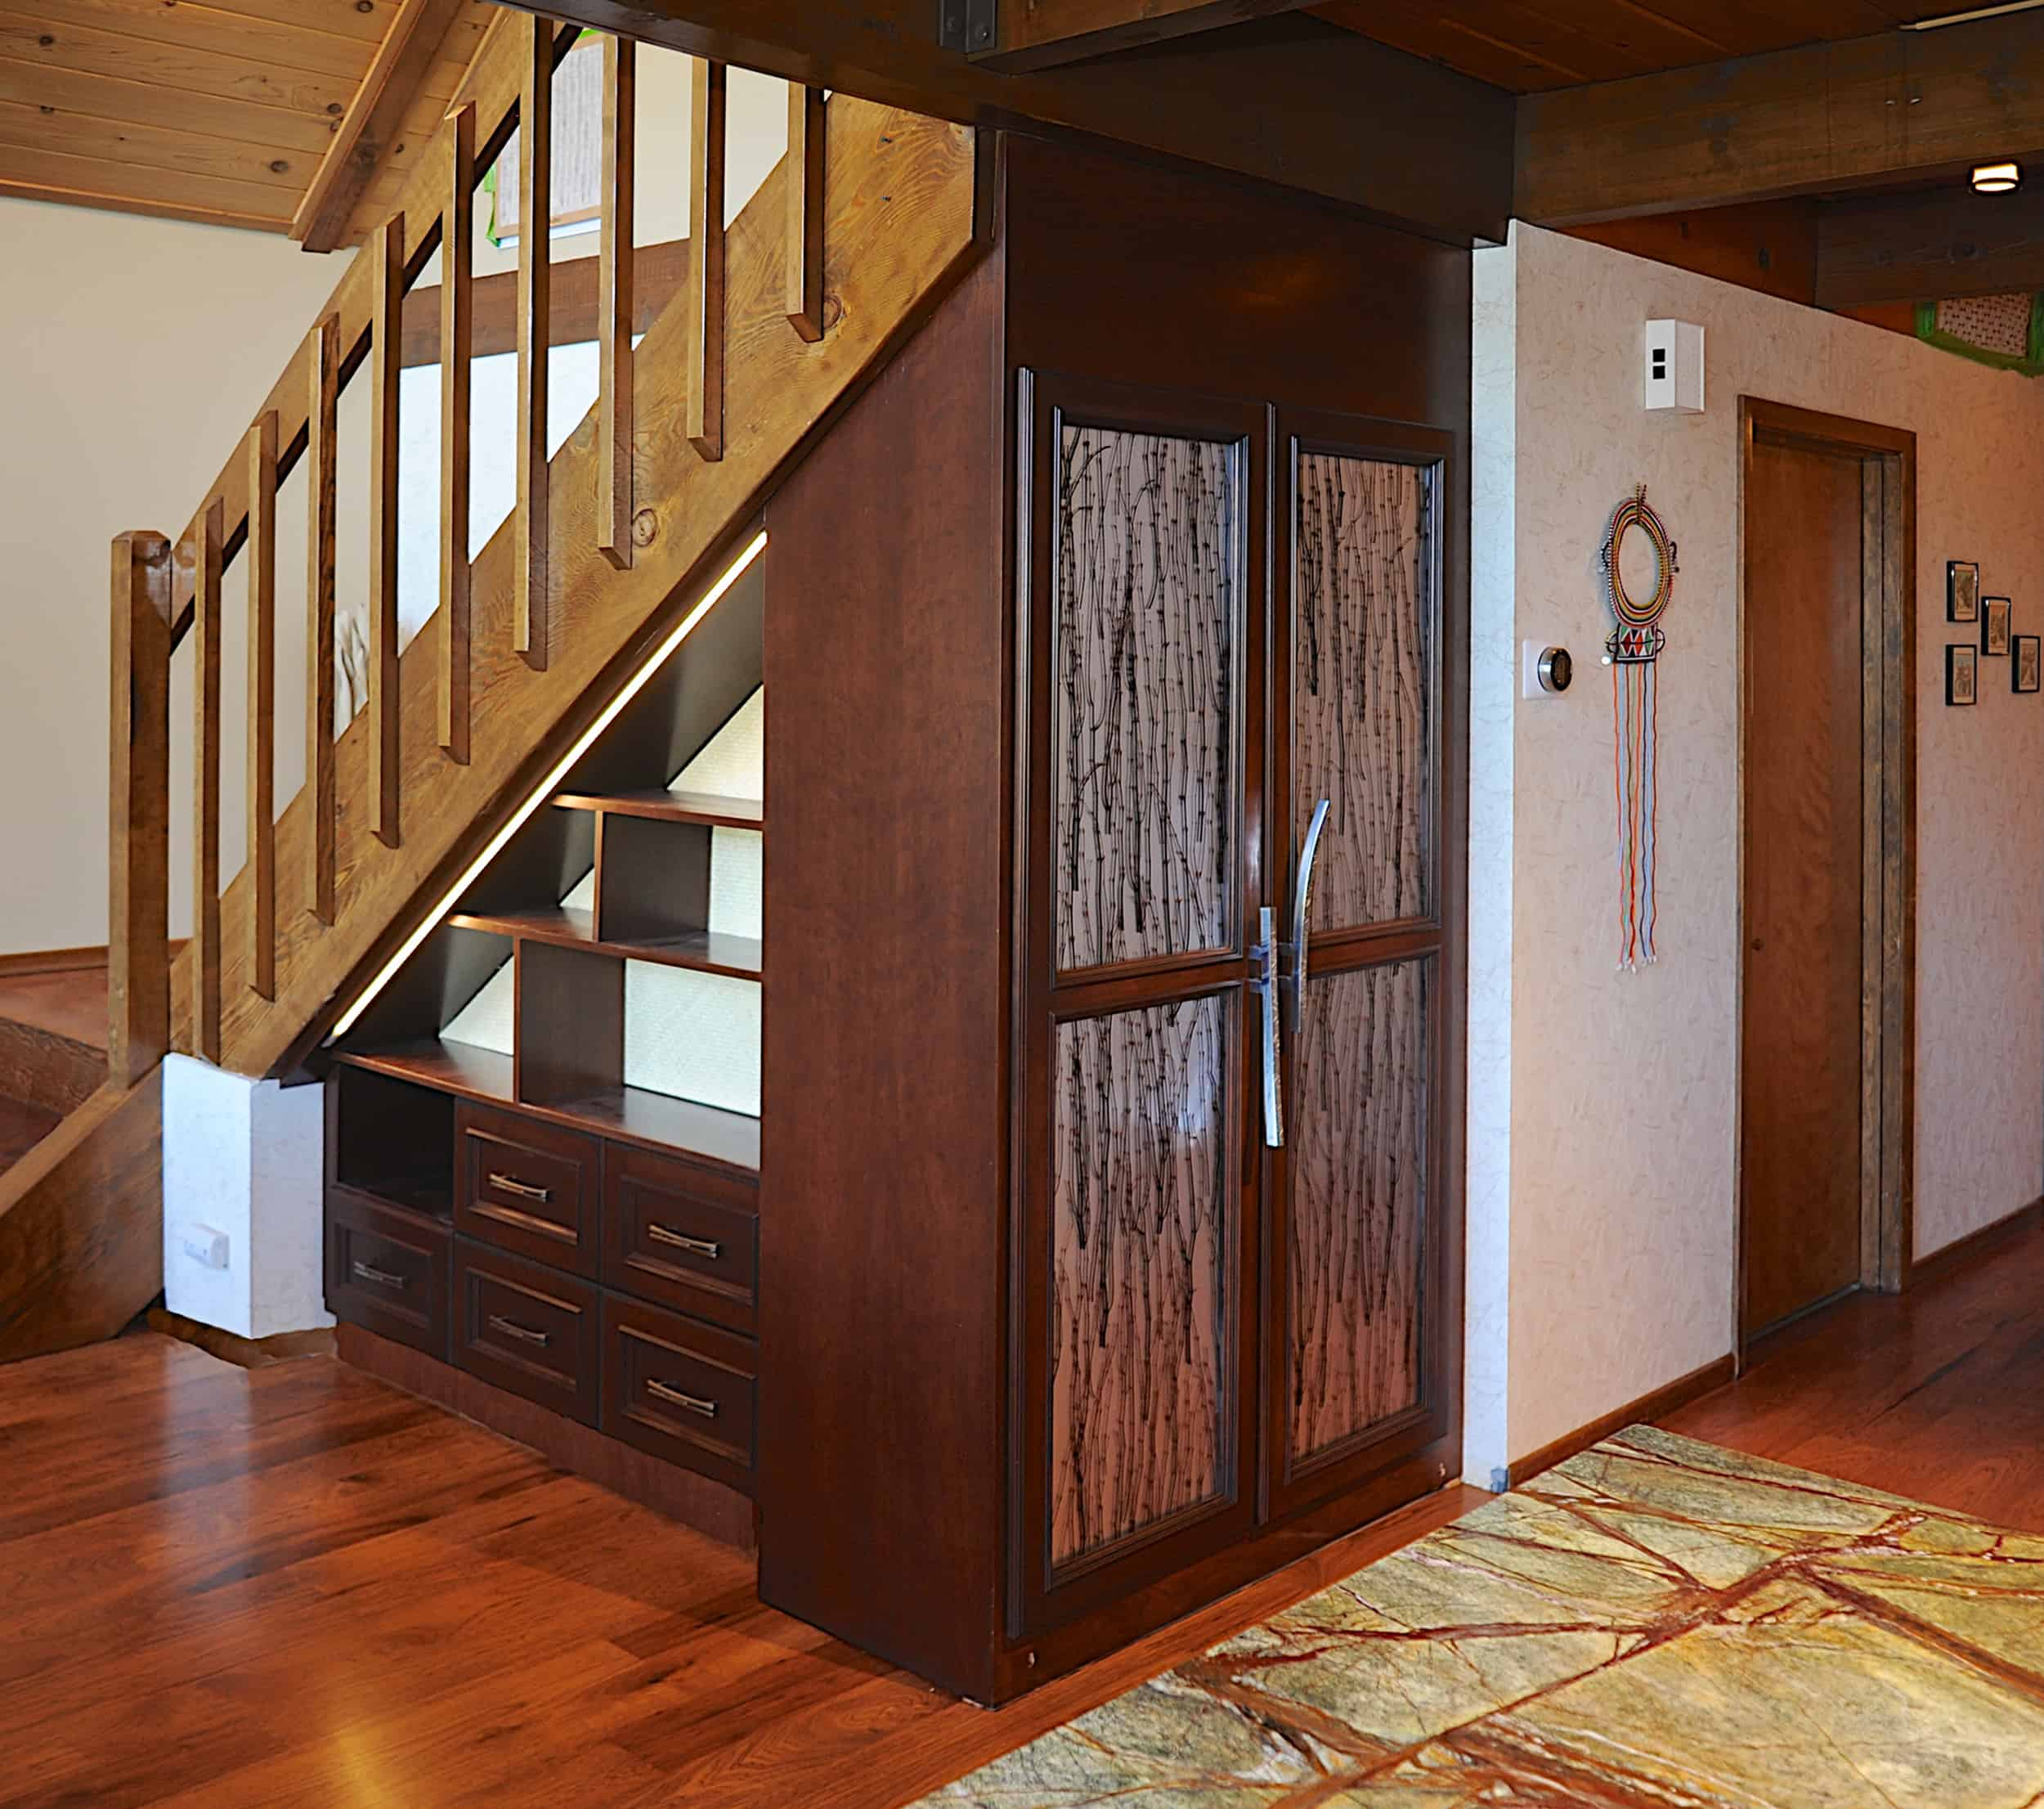 Neil Kelly specializes in remodeling craftsman-style homes, adding built-ins, and closet additions